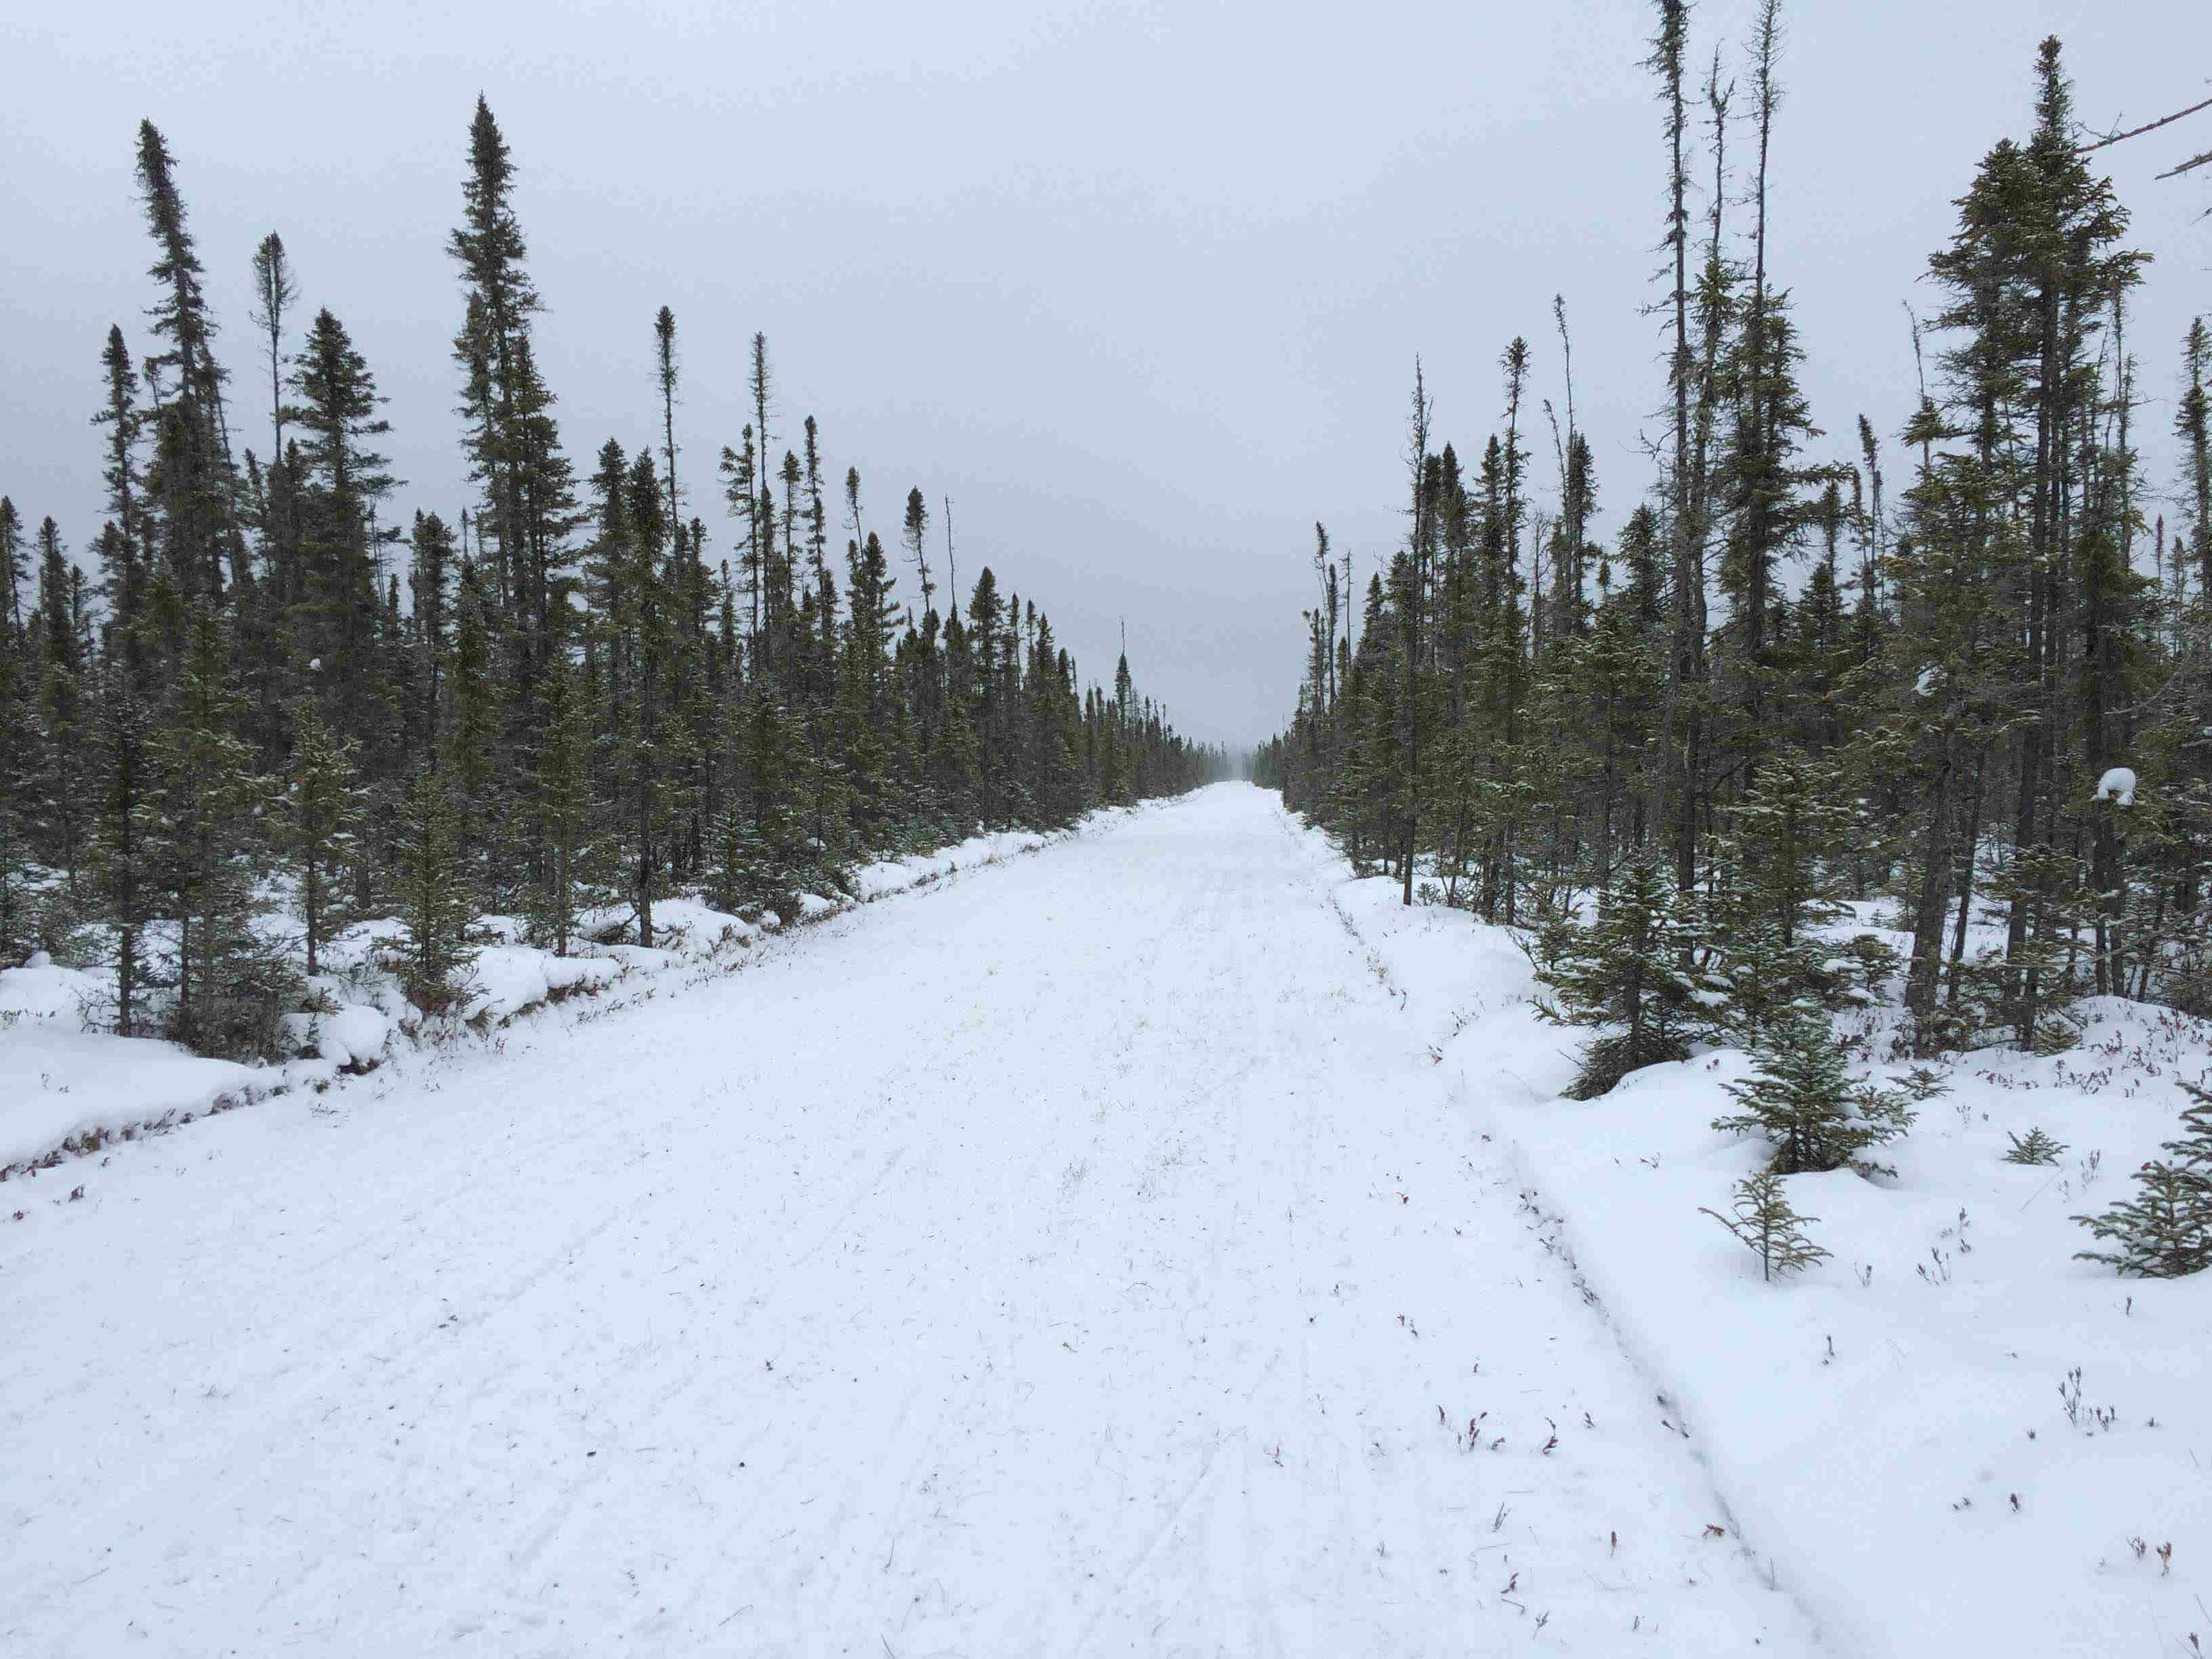 View facing straight down a snow covered road with pine trees on the sides